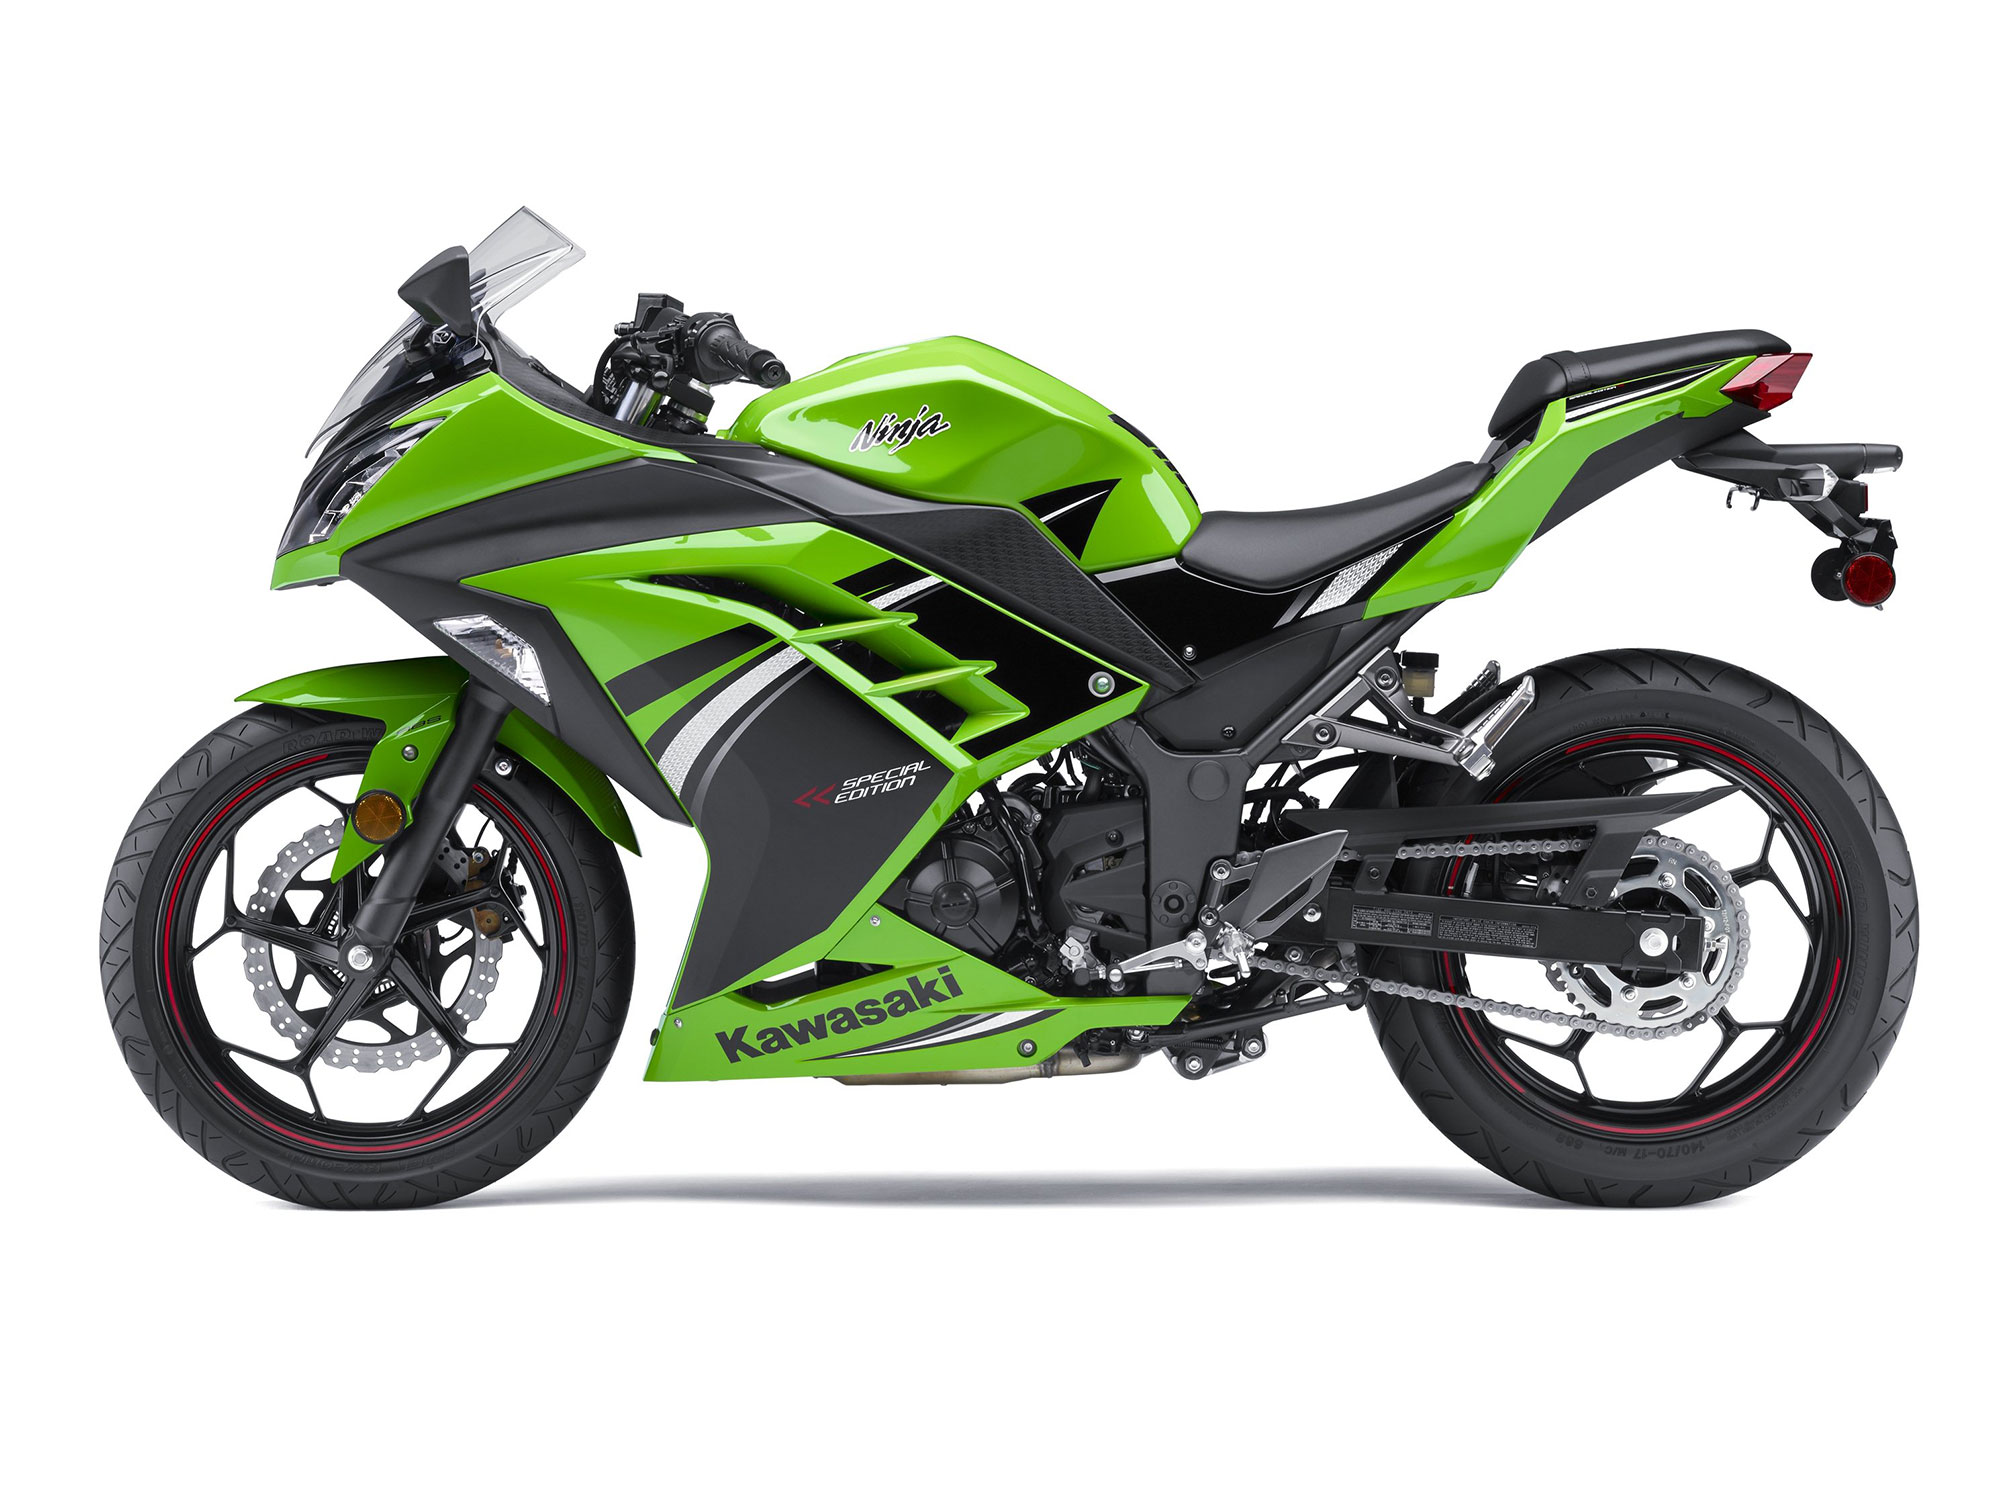 2014 kawasaki ninja 300 se review. Black Bedroom Furniture Sets. Home Design Ideas